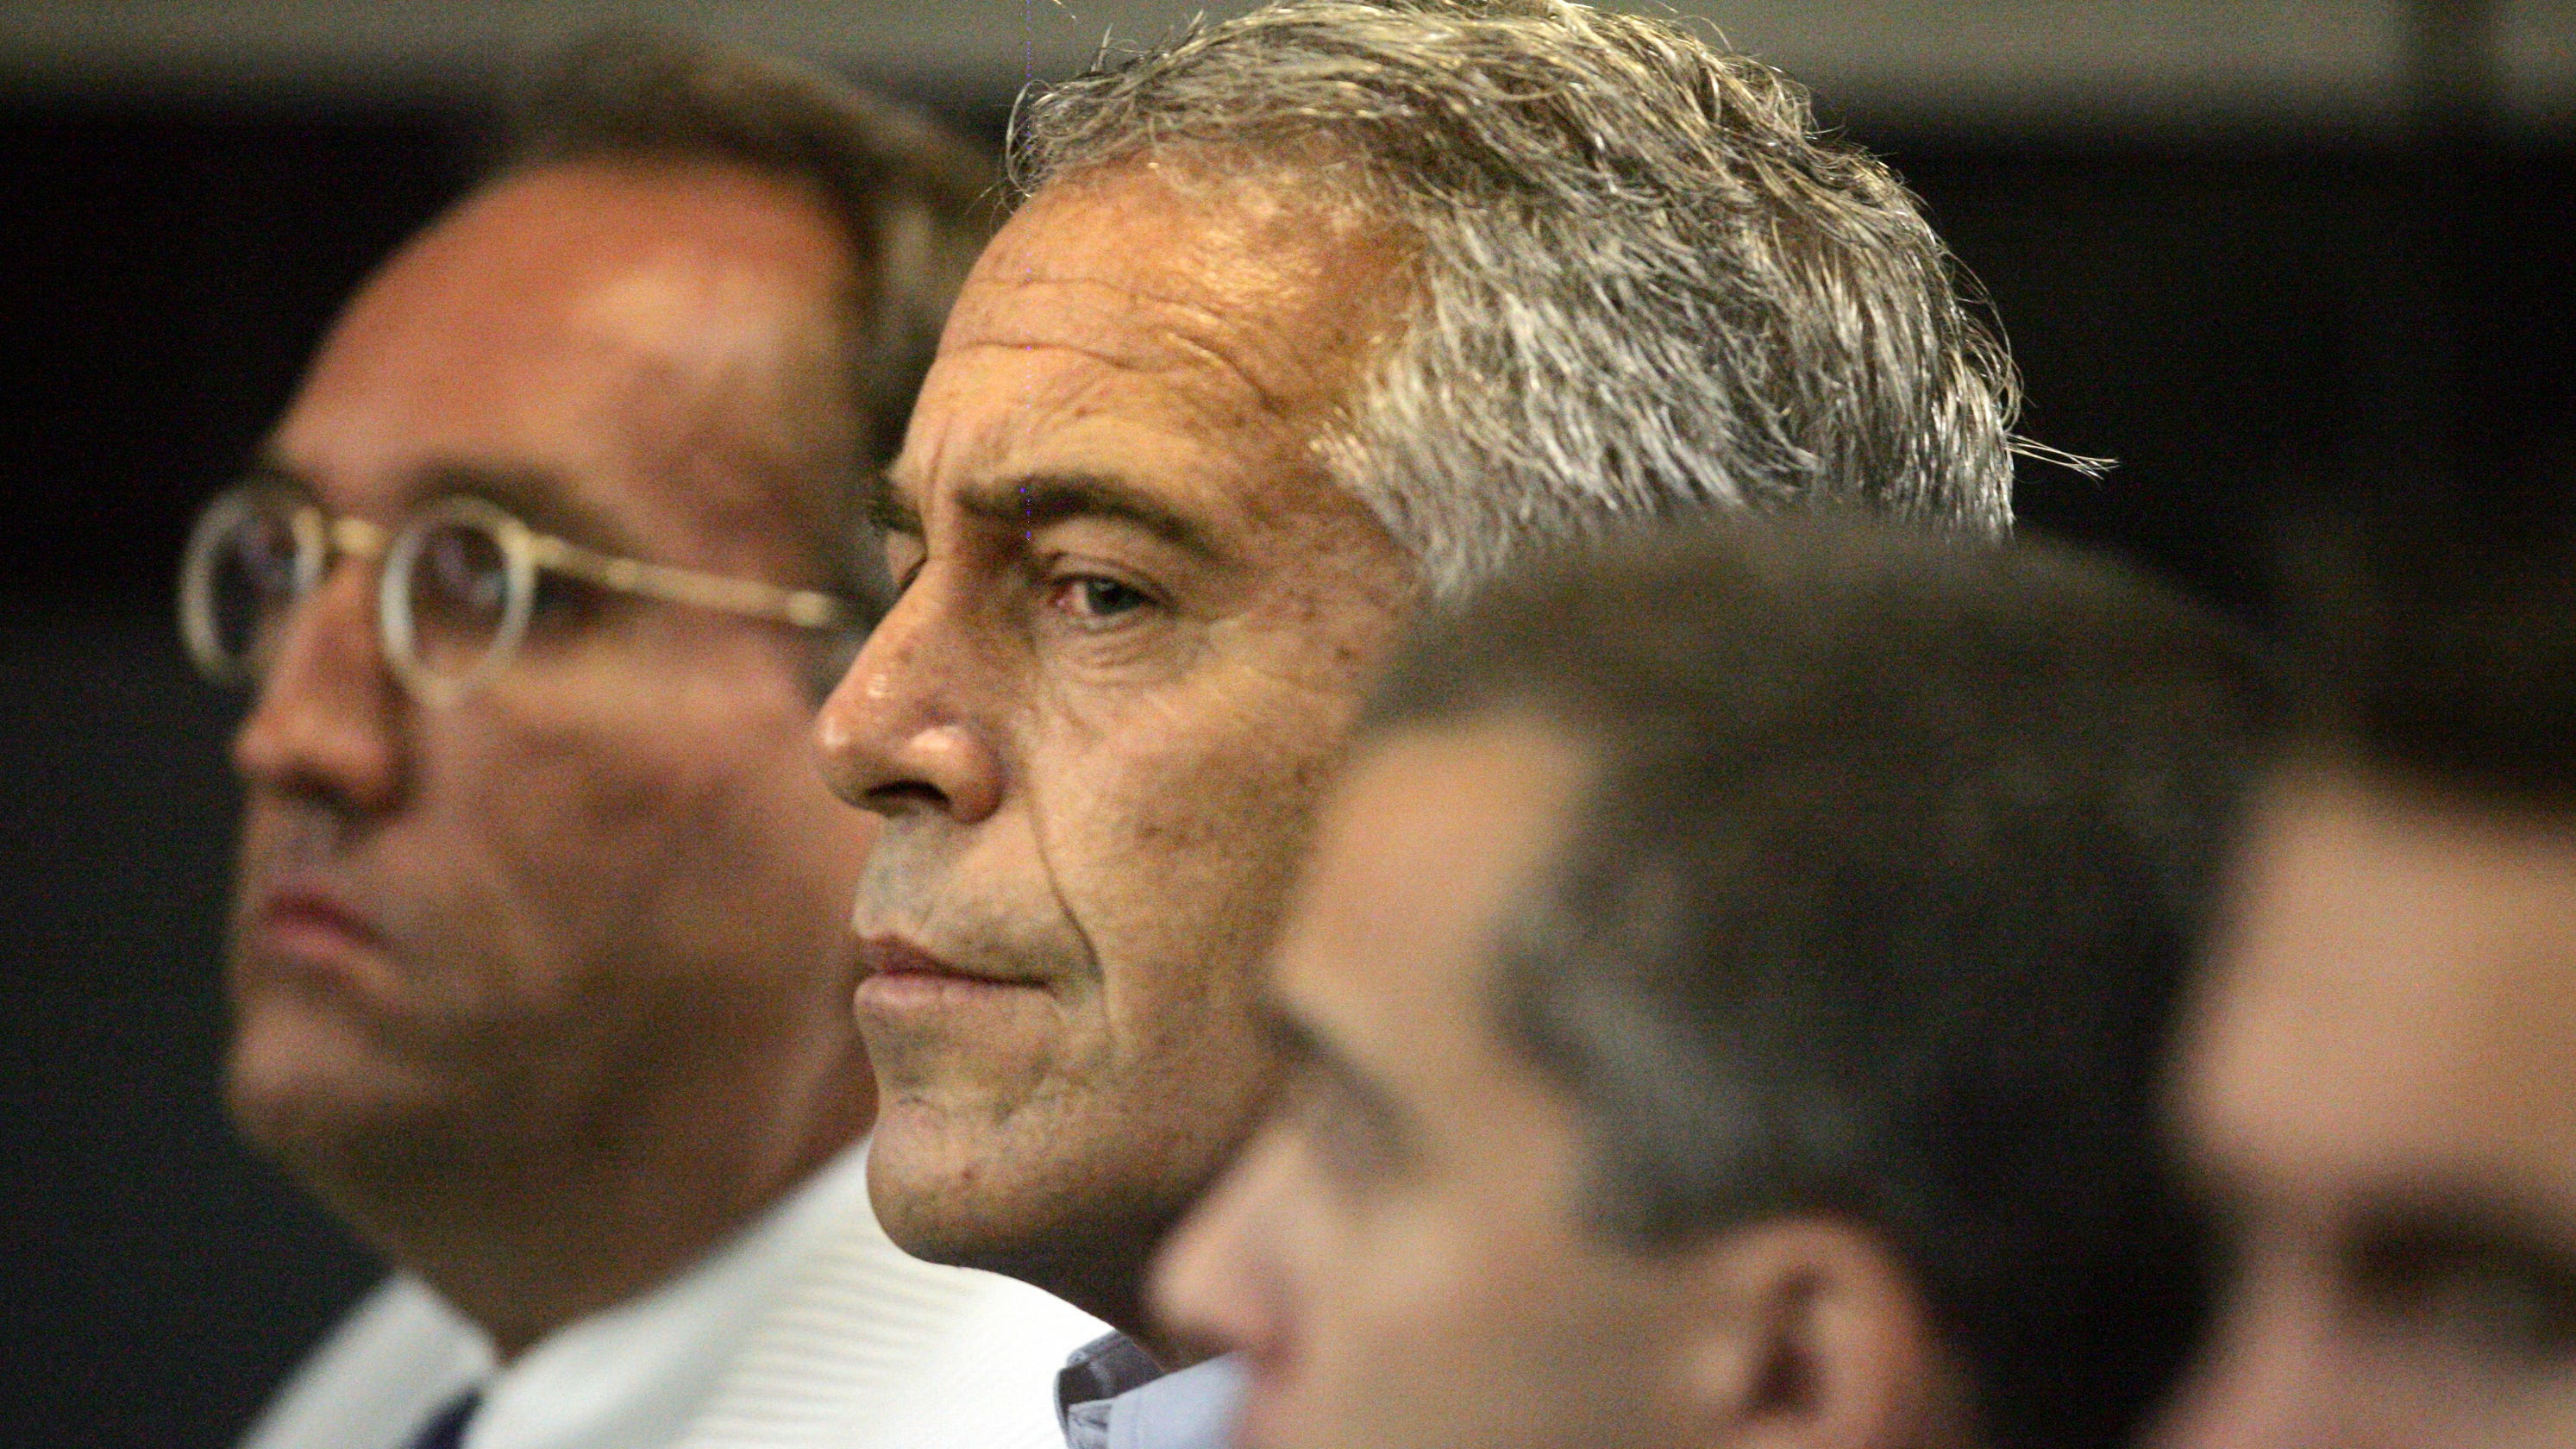 Jeffrey Epstein indicted on sex- trafficking charges